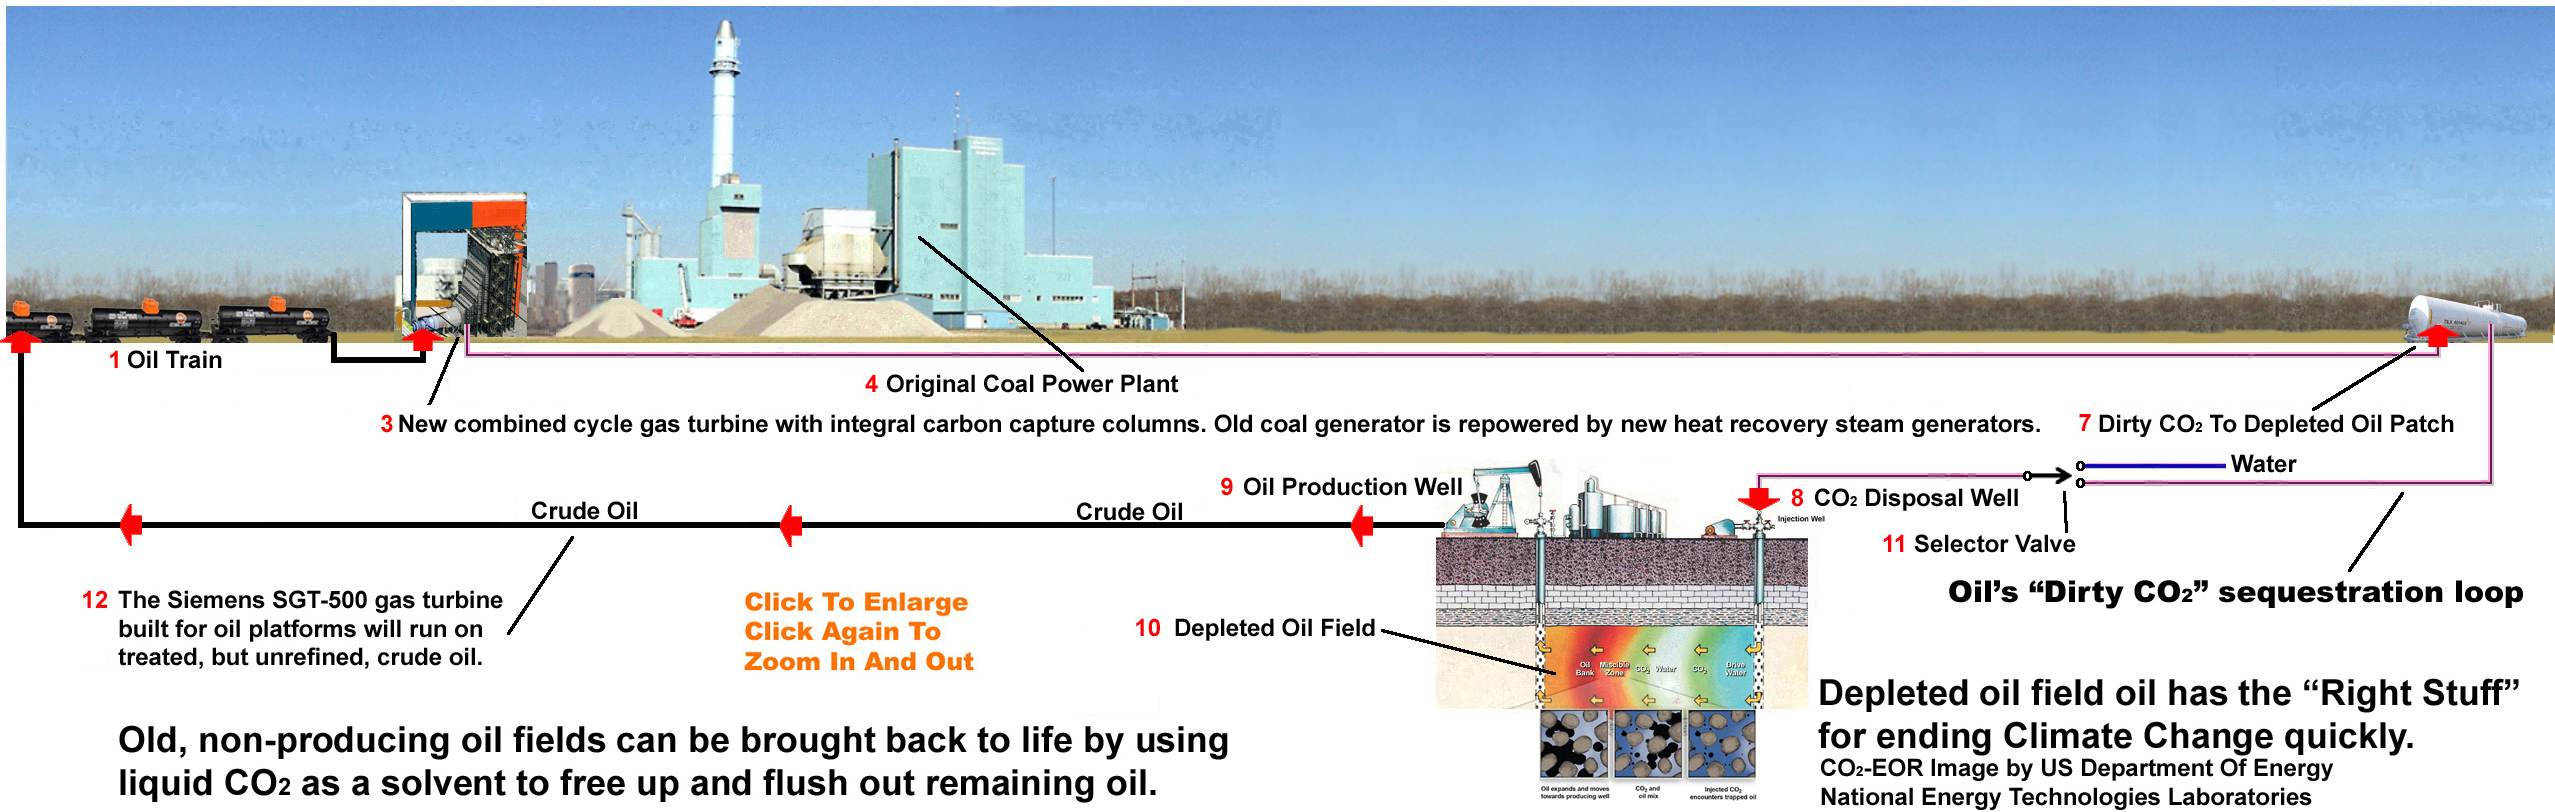 Recycling Coal Power Plants